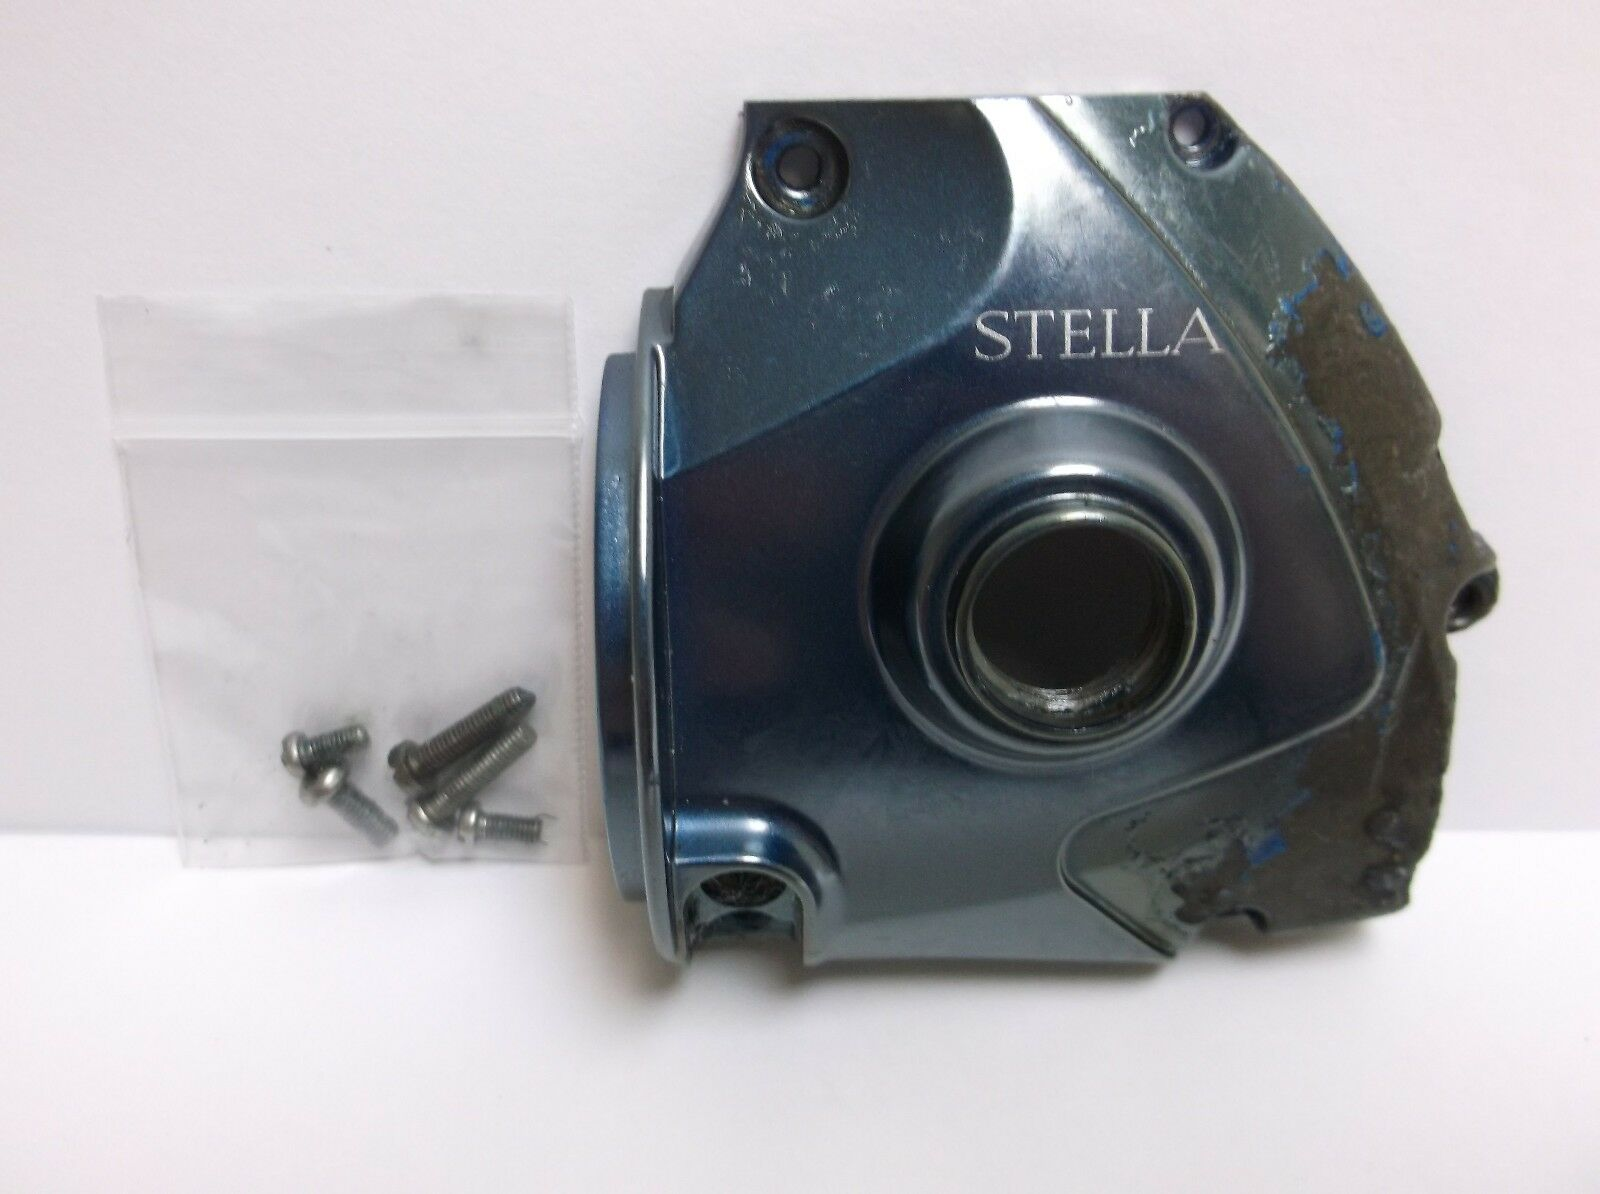 USED SHIMANO SPINNING REEL PART  Stella 20000 FA - Body Side Cover  D Corrosion